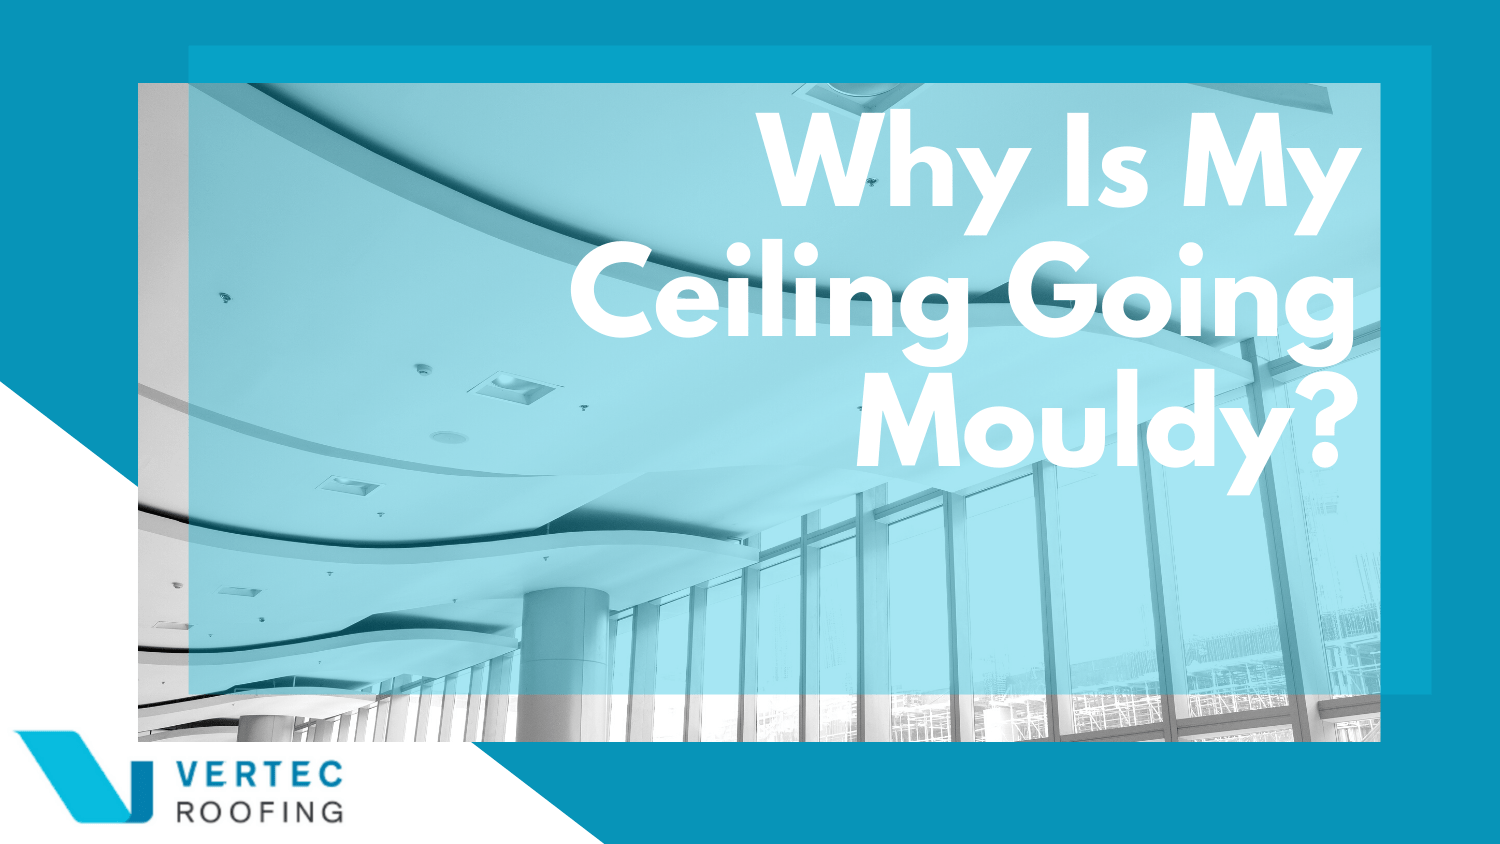 Why Is My Ceiling Going Mouldy?